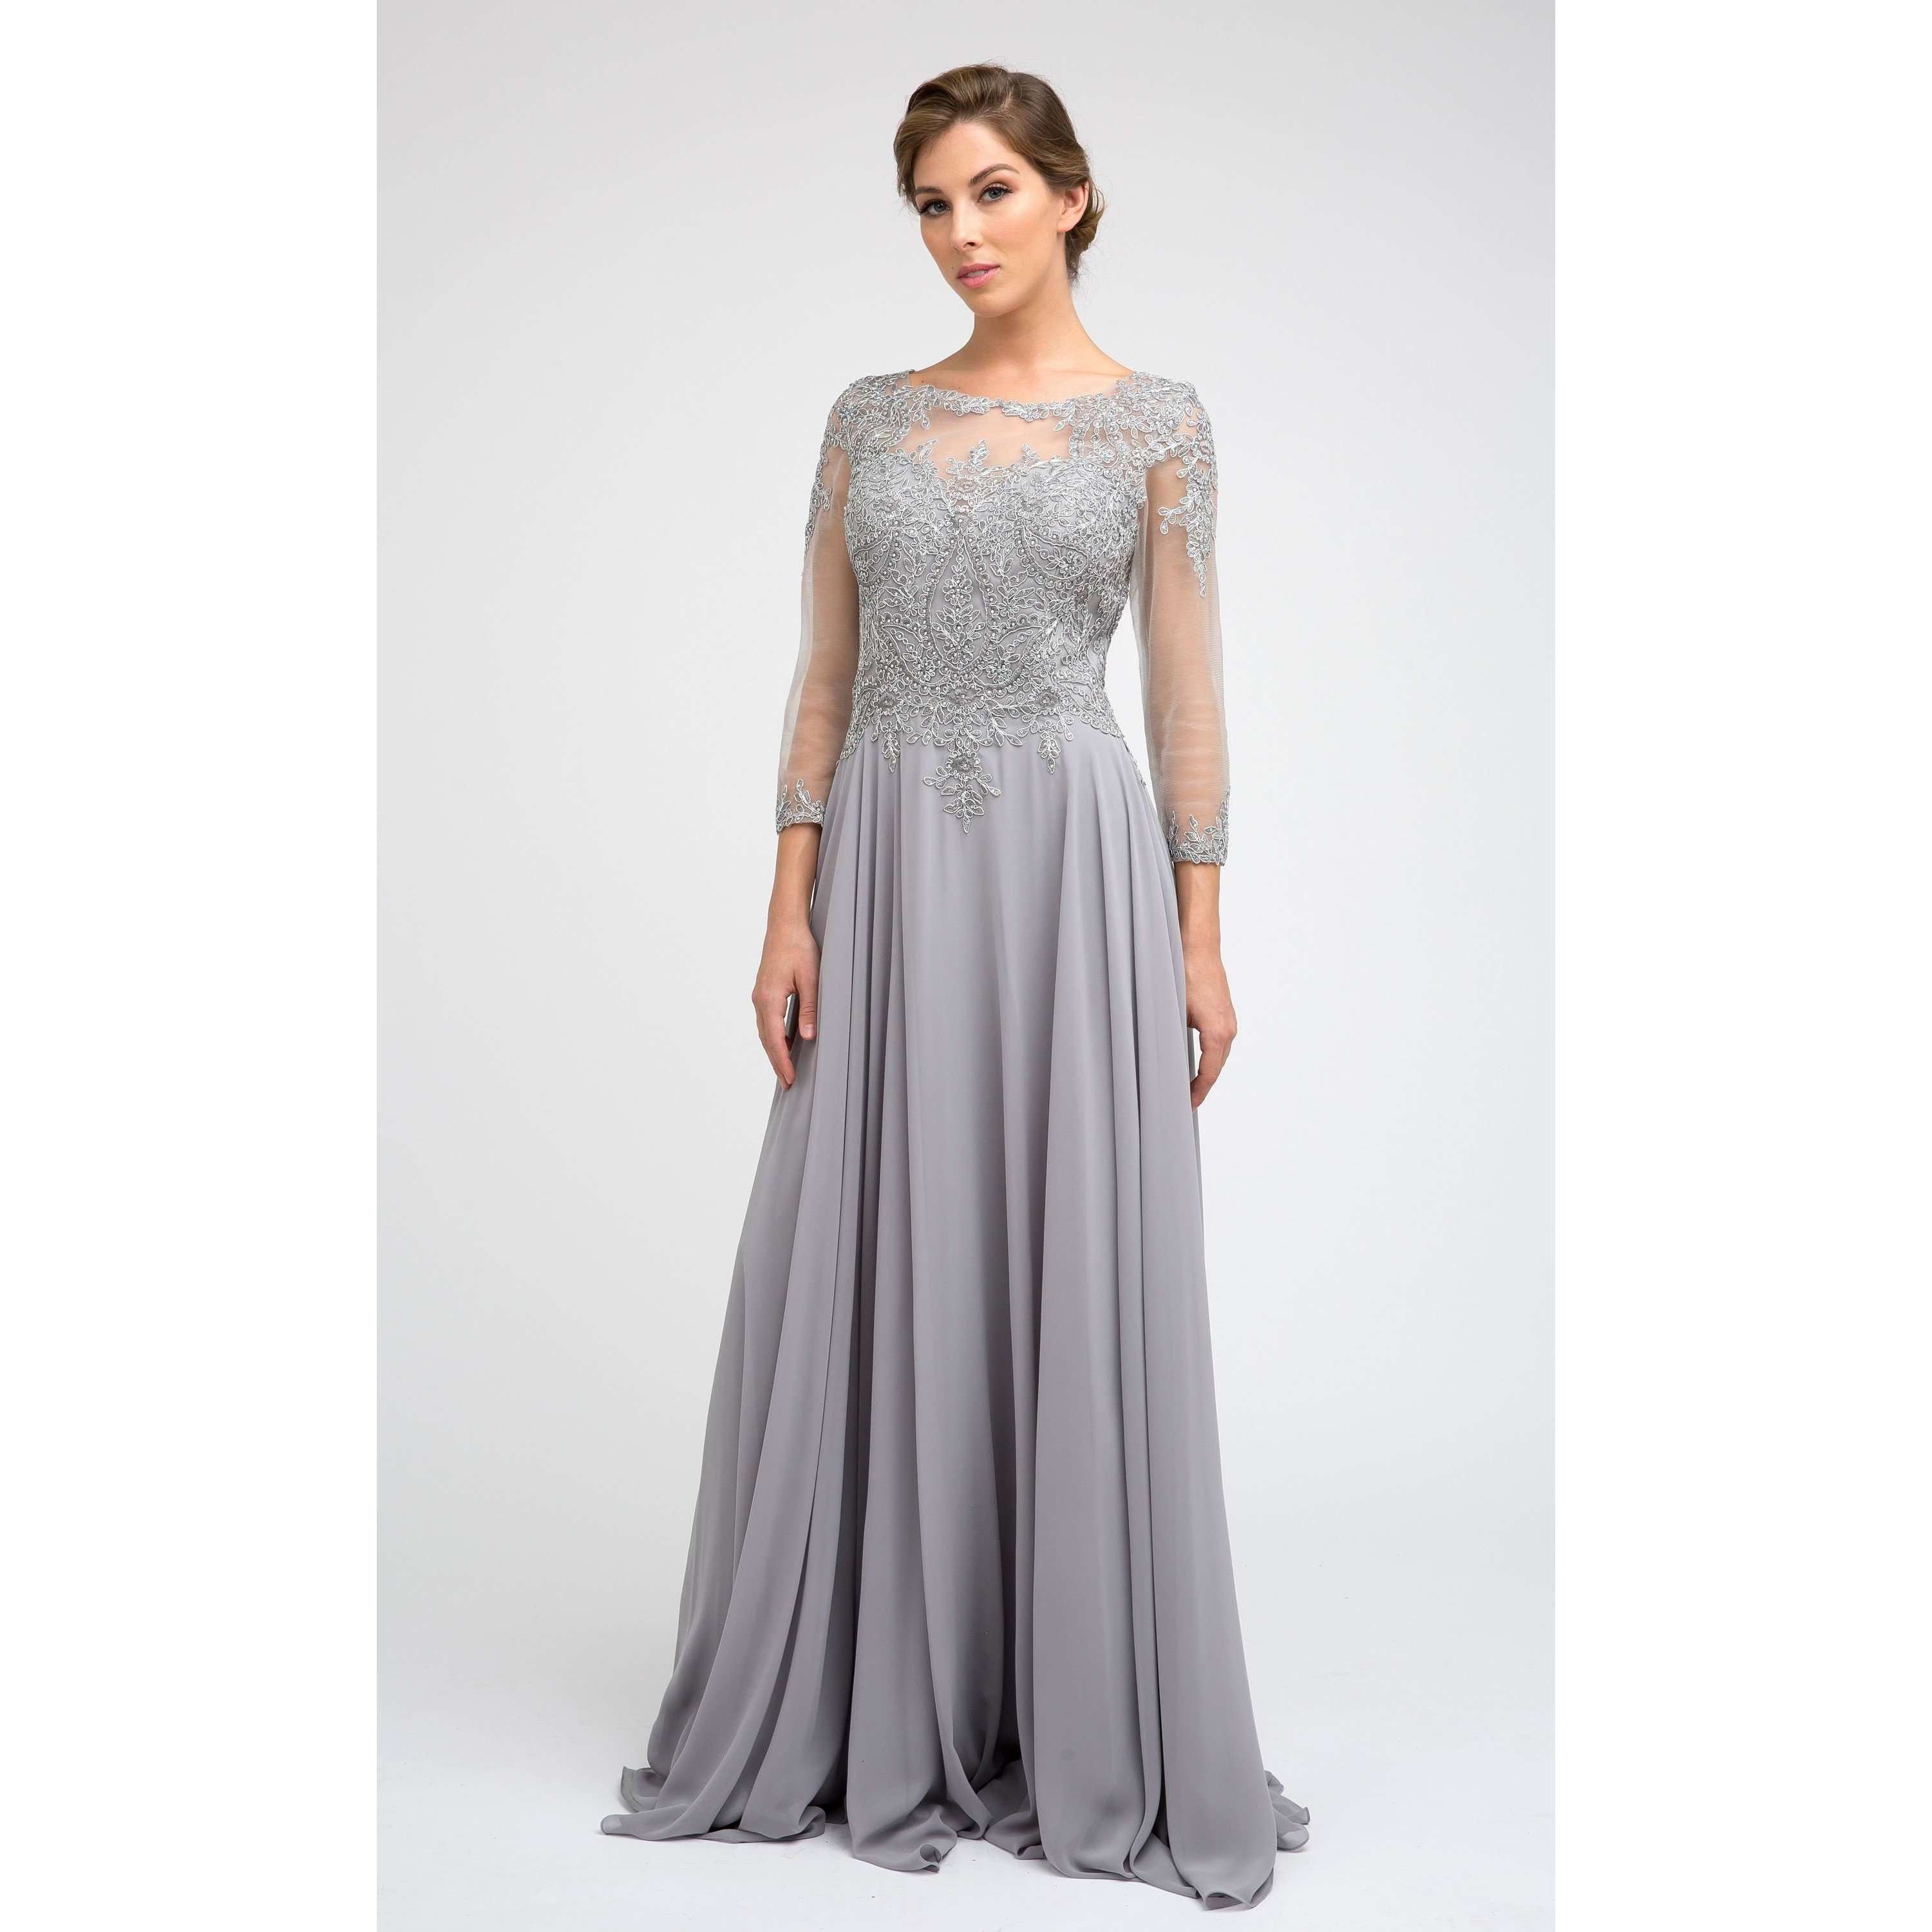 Embroidered Lace Applique Long Sleeve Gown M12 - Julietdresses